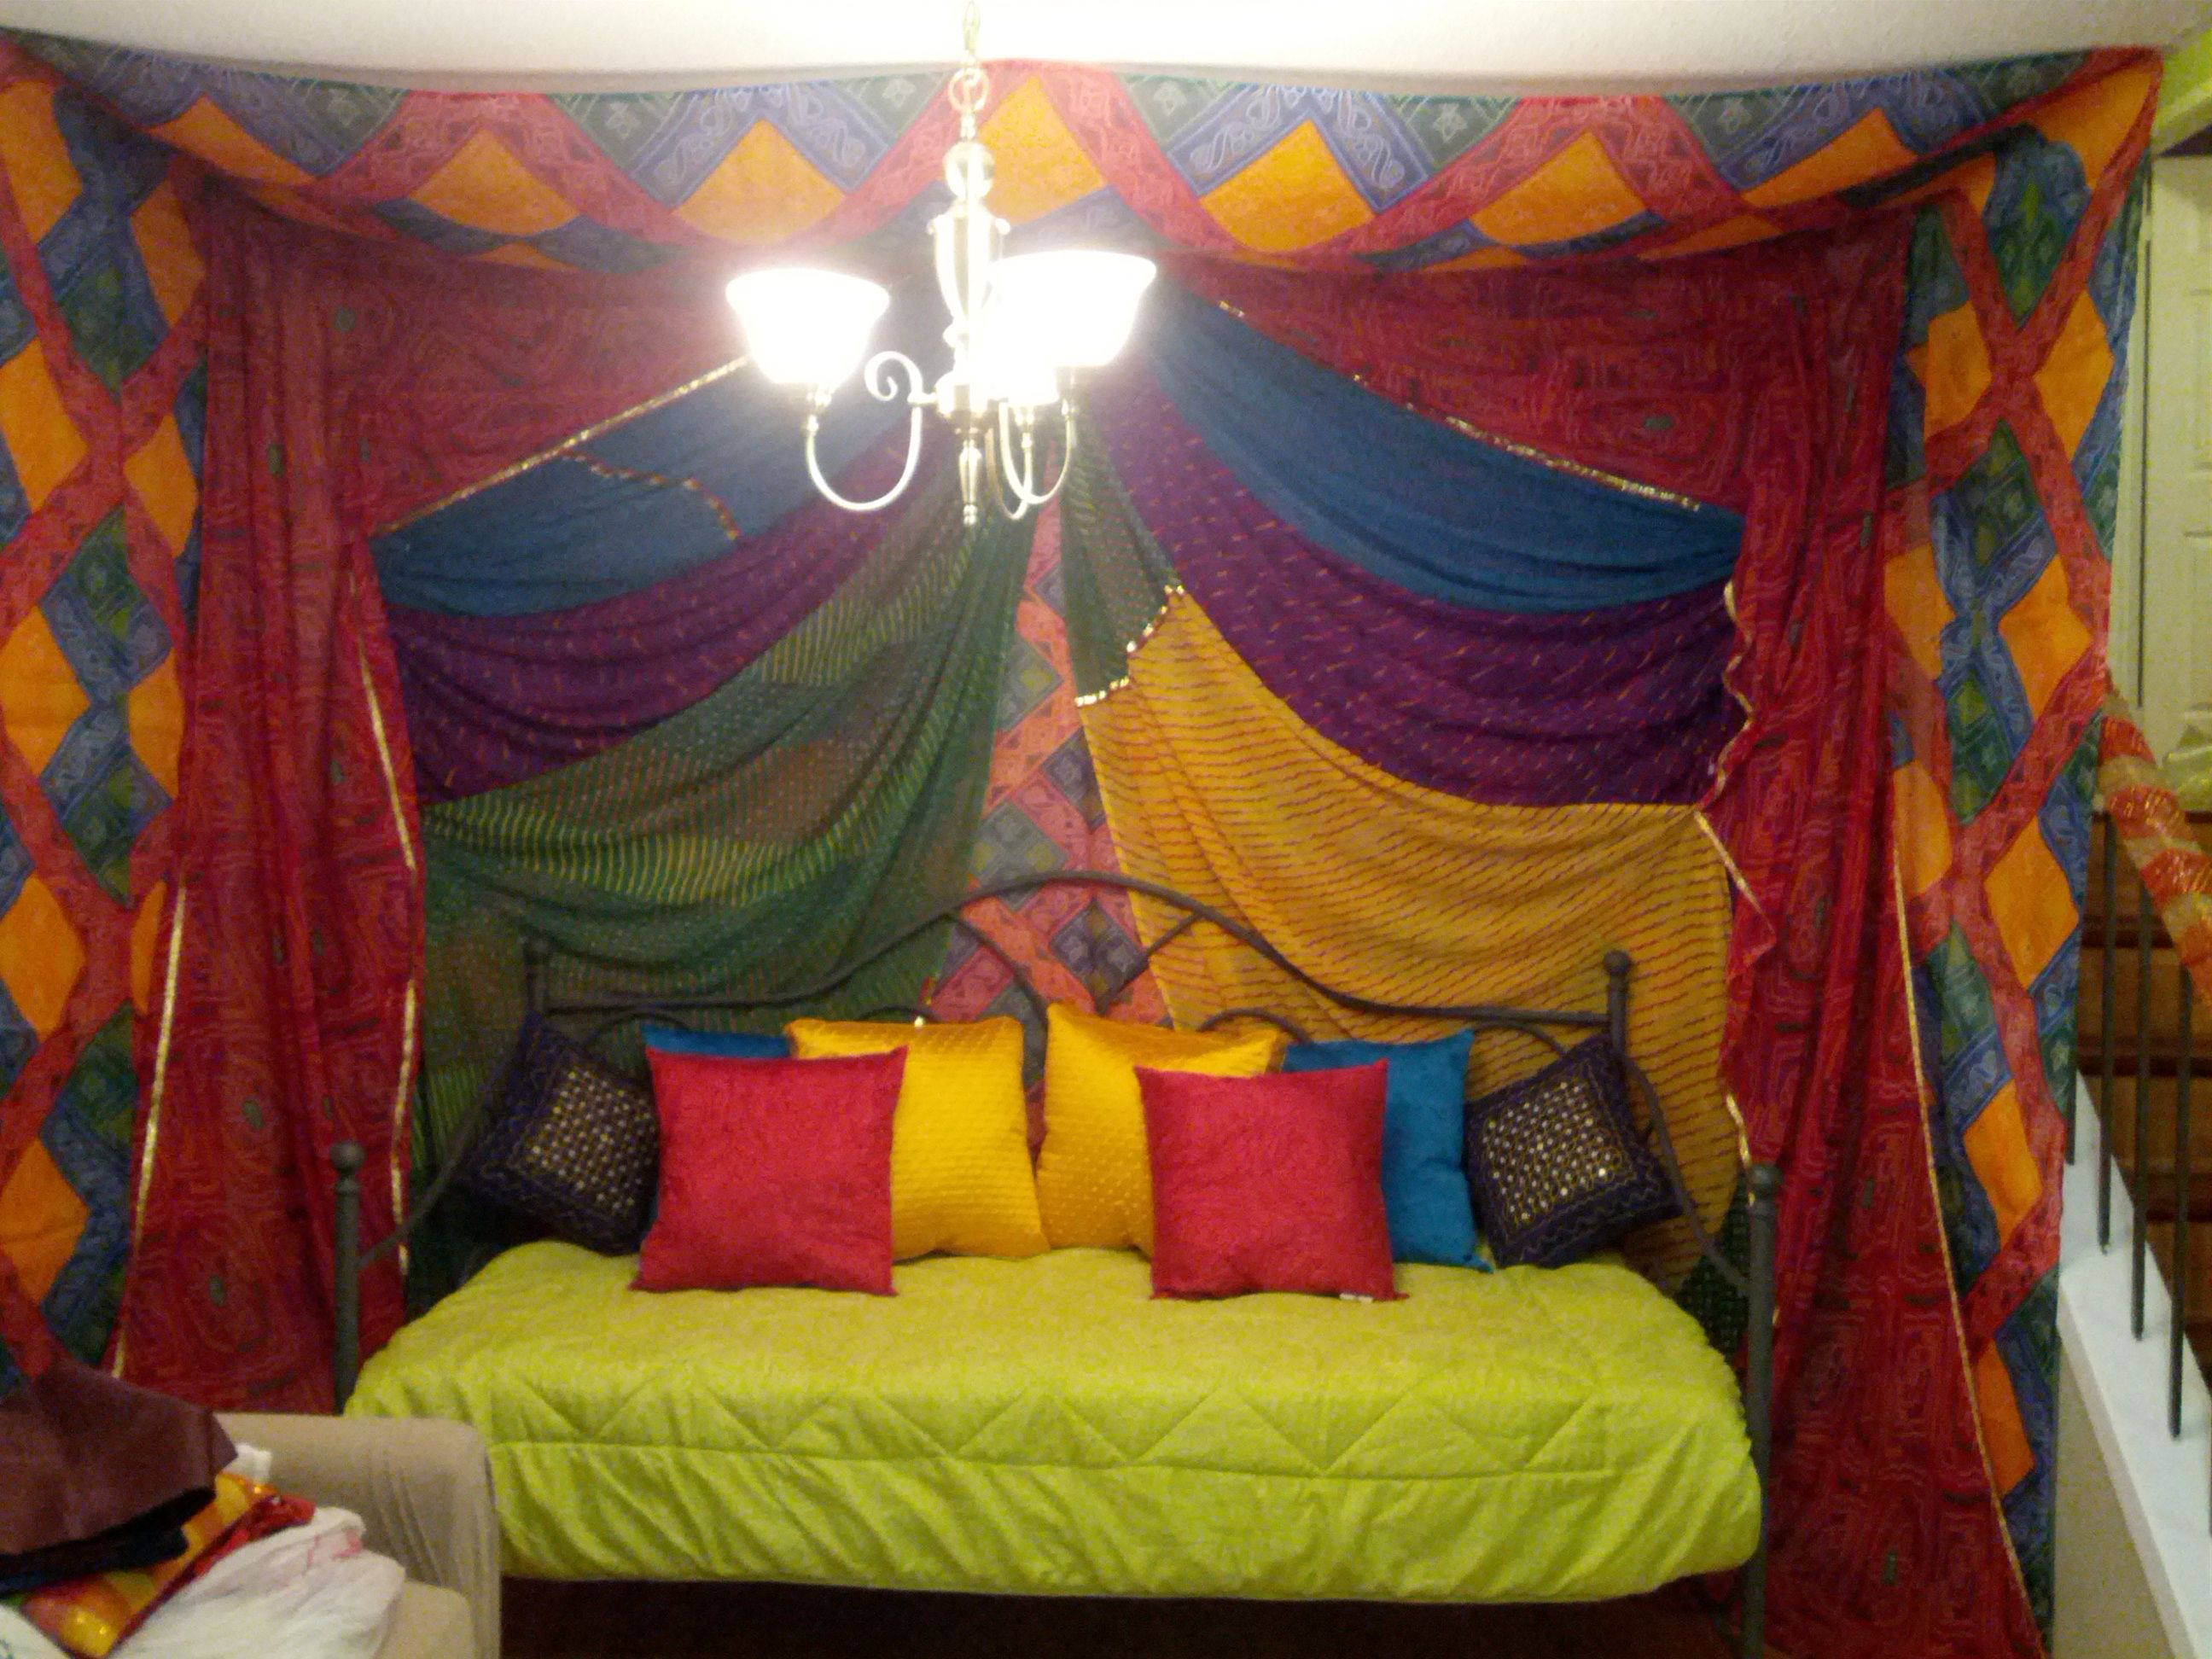 Indian wedding decor at home for a rajasthani inspired for Www decorations home